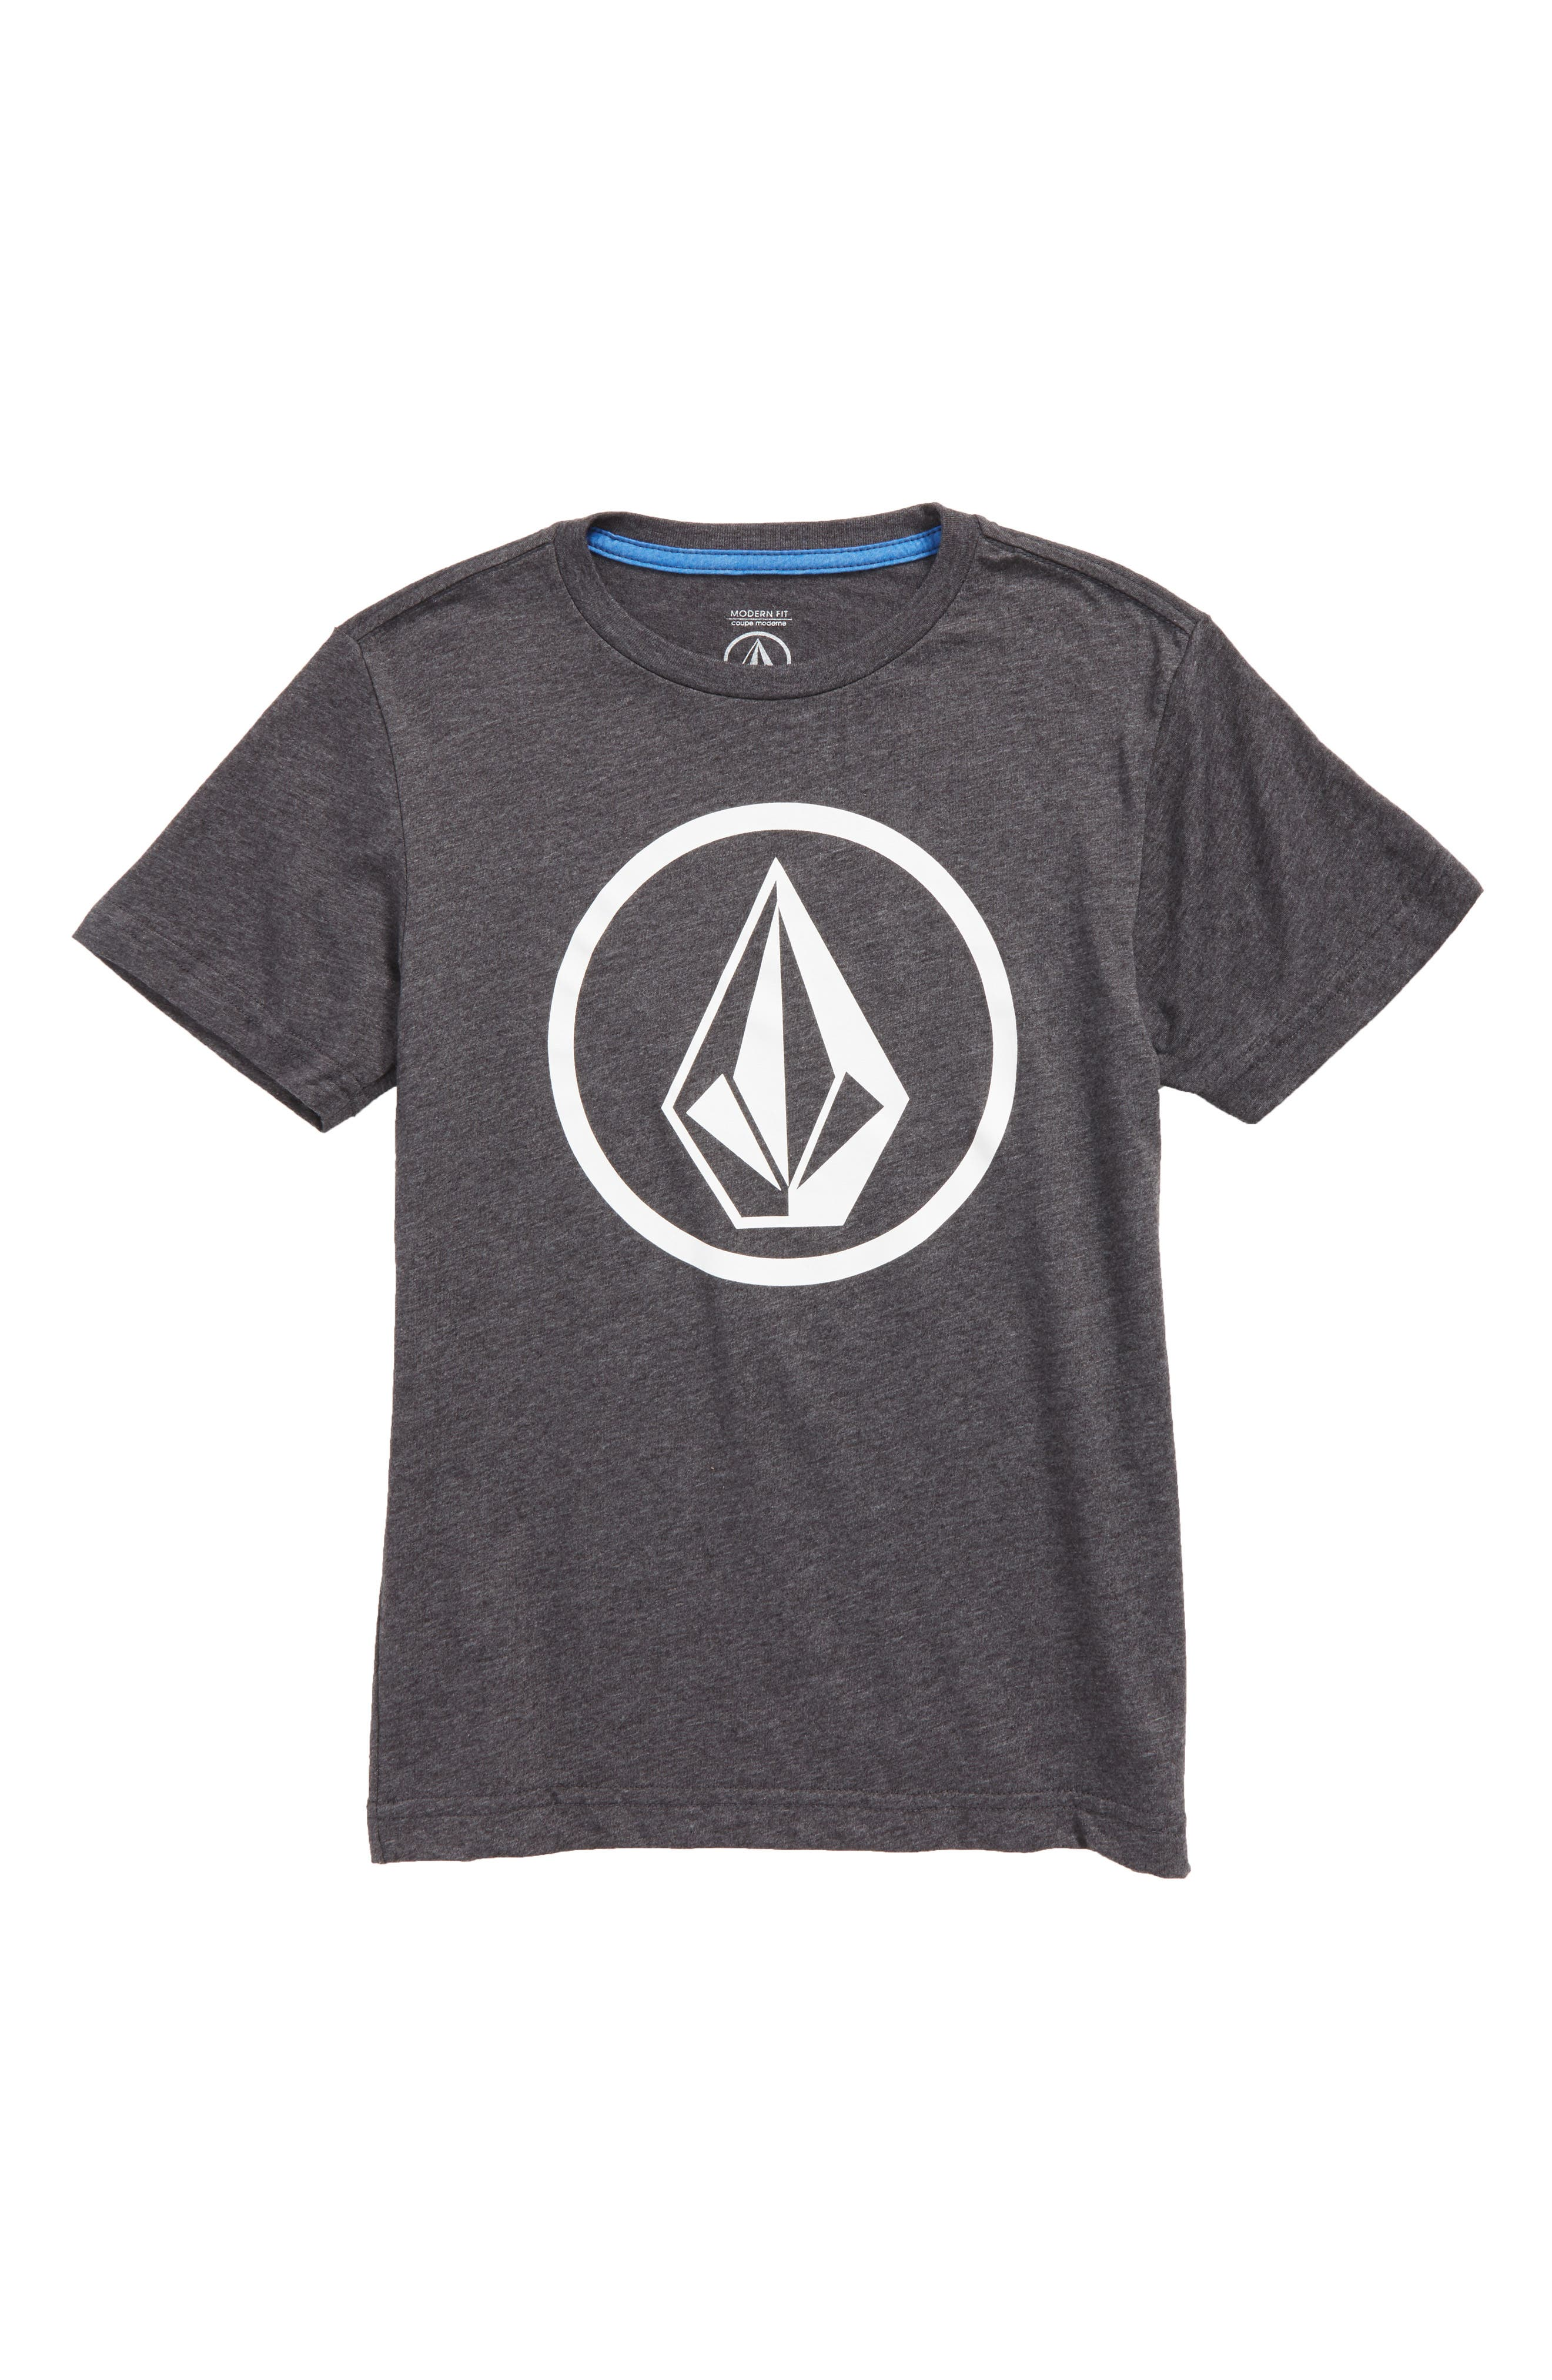 Main Image - Volcom Circle Stone Graphic T-Shirt (Big Boys)